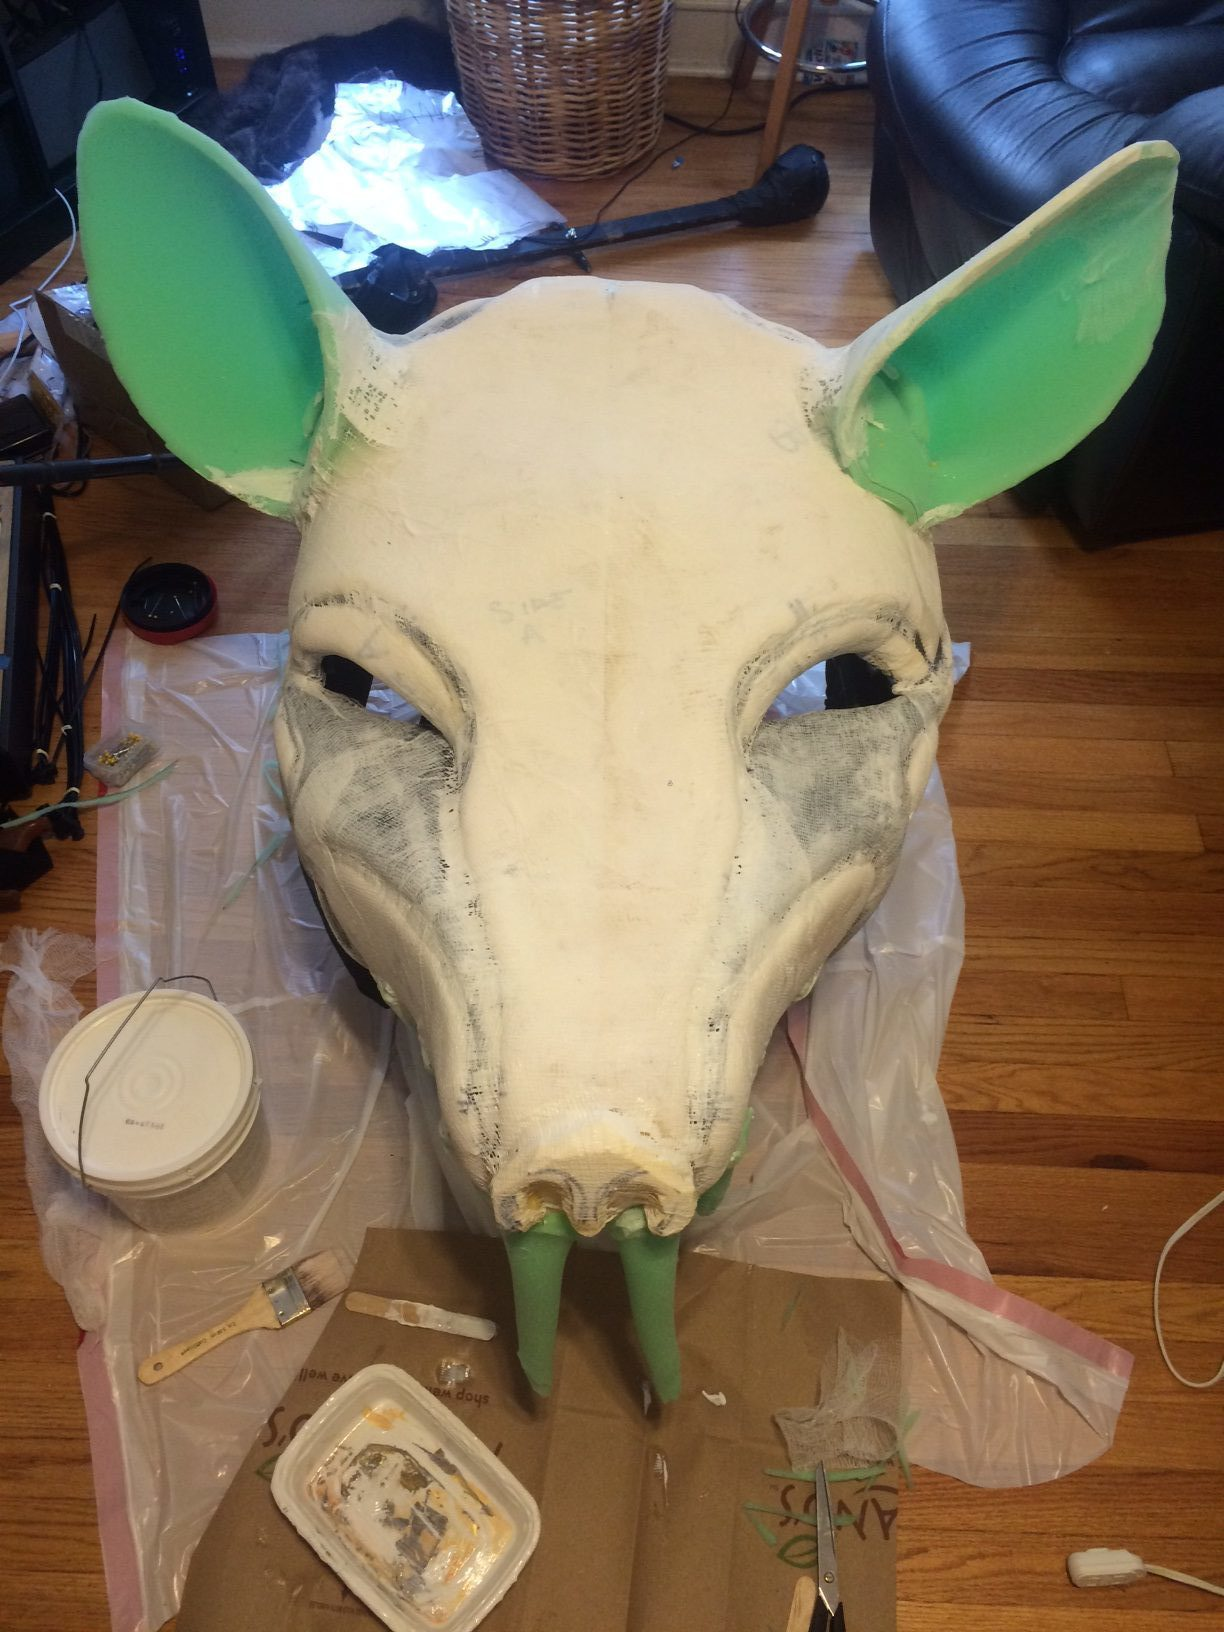 The base is covered in cheesecloth and Sculpt-Or-Coat, and has its teeth and ears added.